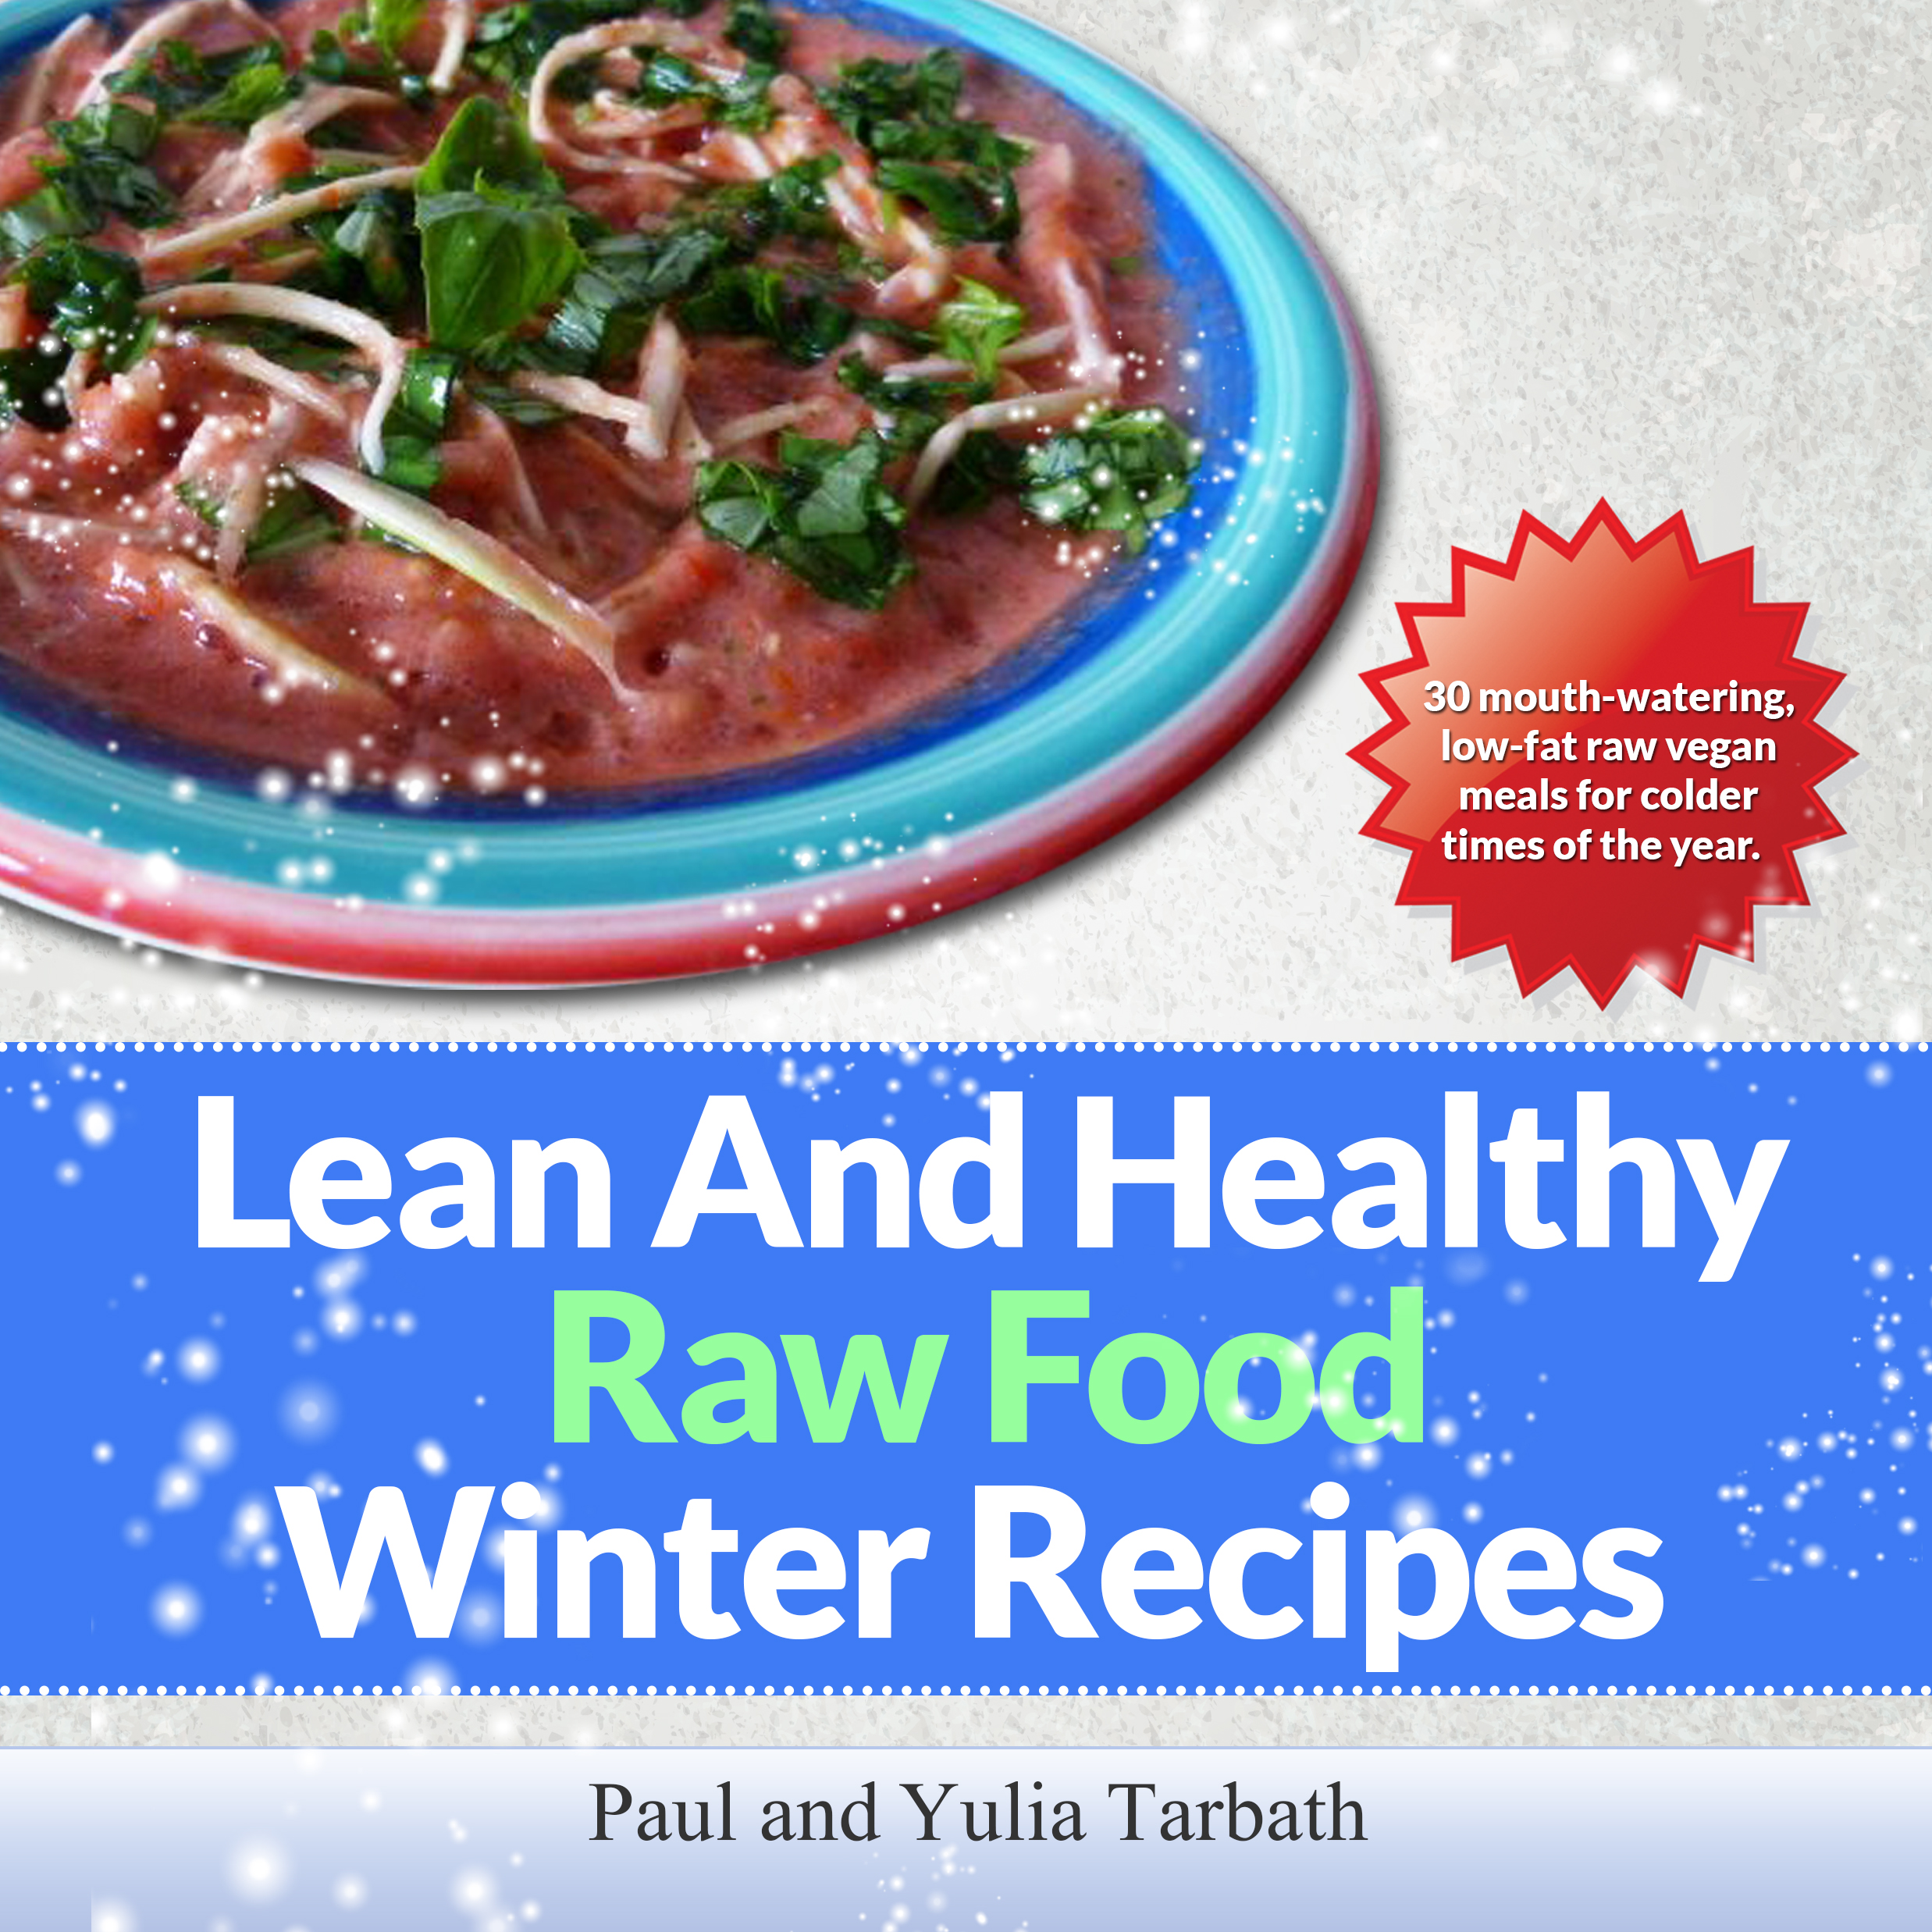 Lean And Healthy Raw Food Winter Recipes